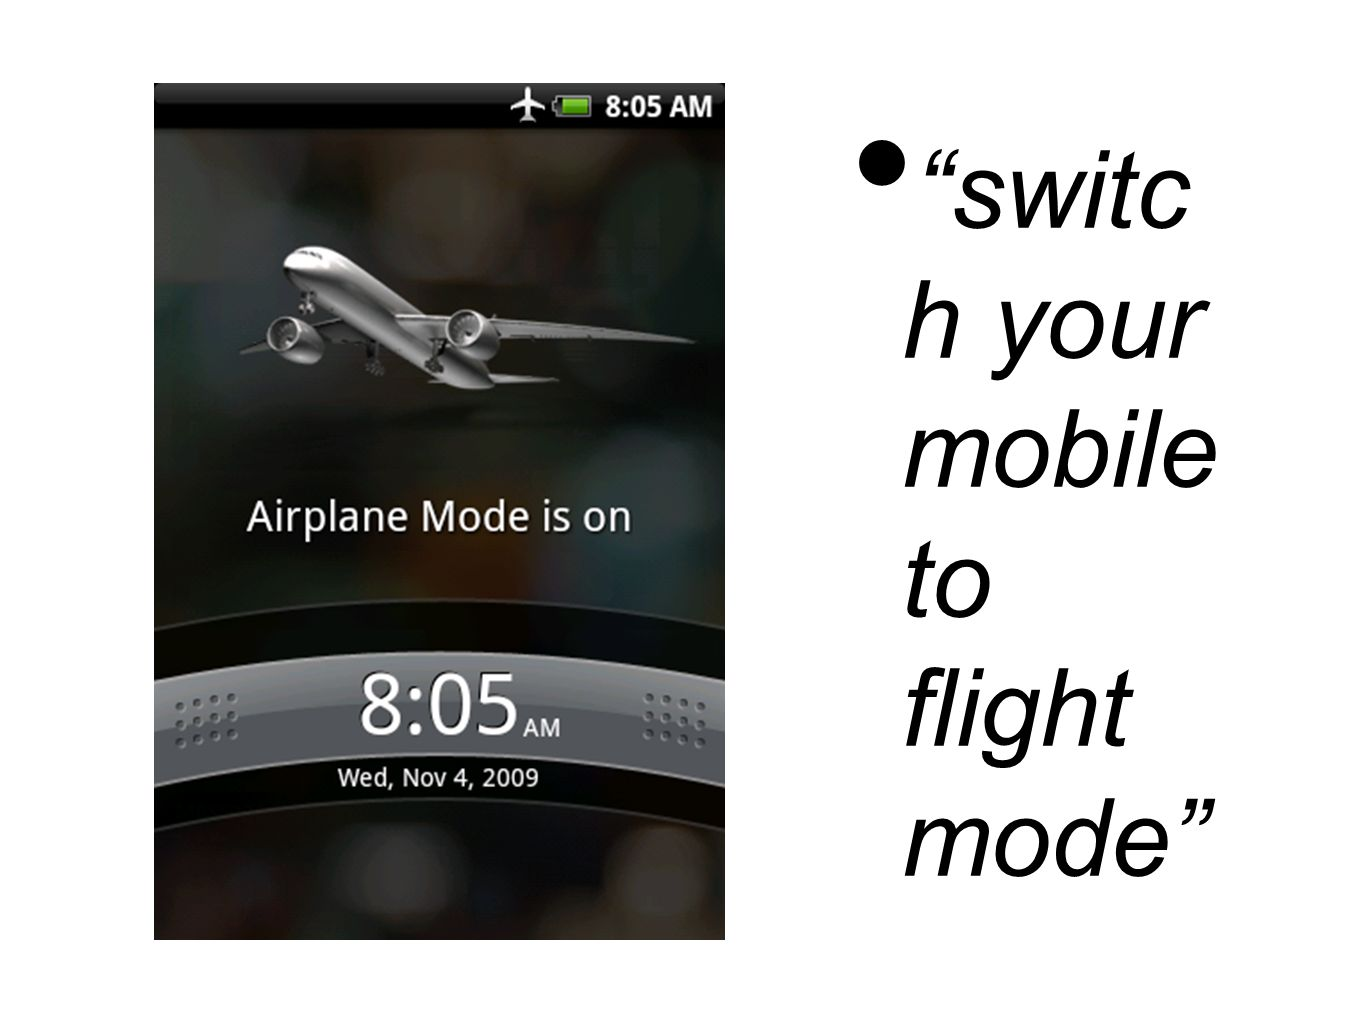 switc h your mobile to flight mode